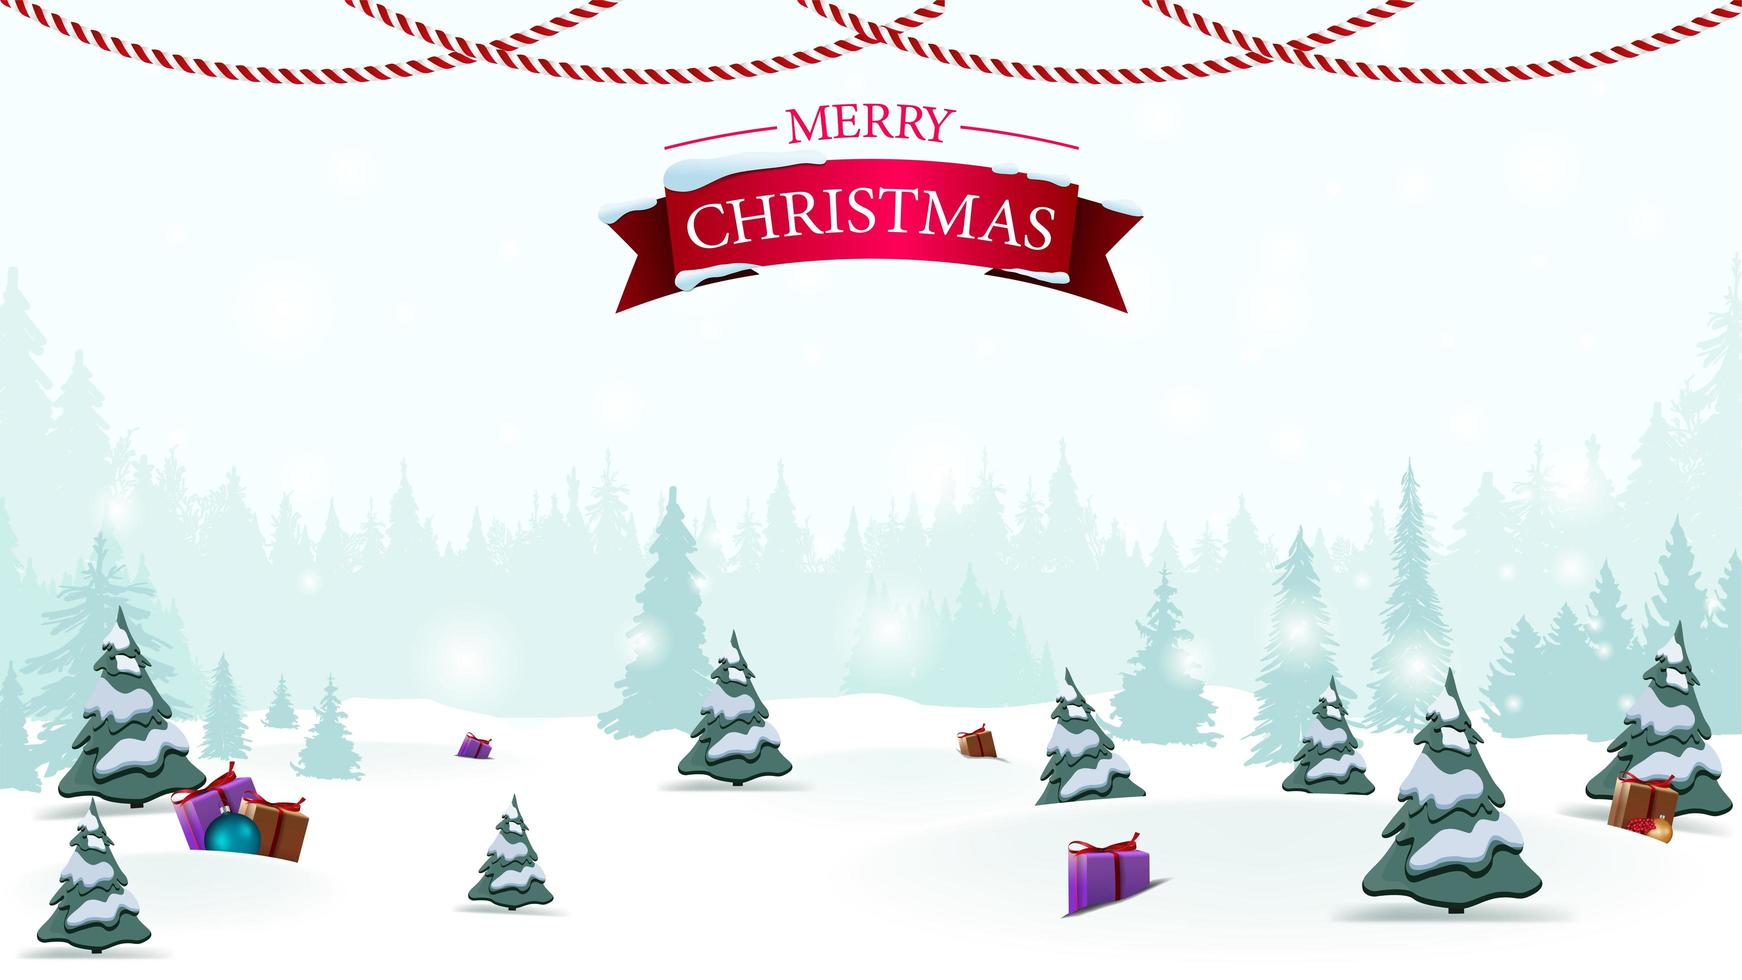 Merry Christmas, blank Christmas template for your arts with light winter cartoon landscape on background vector